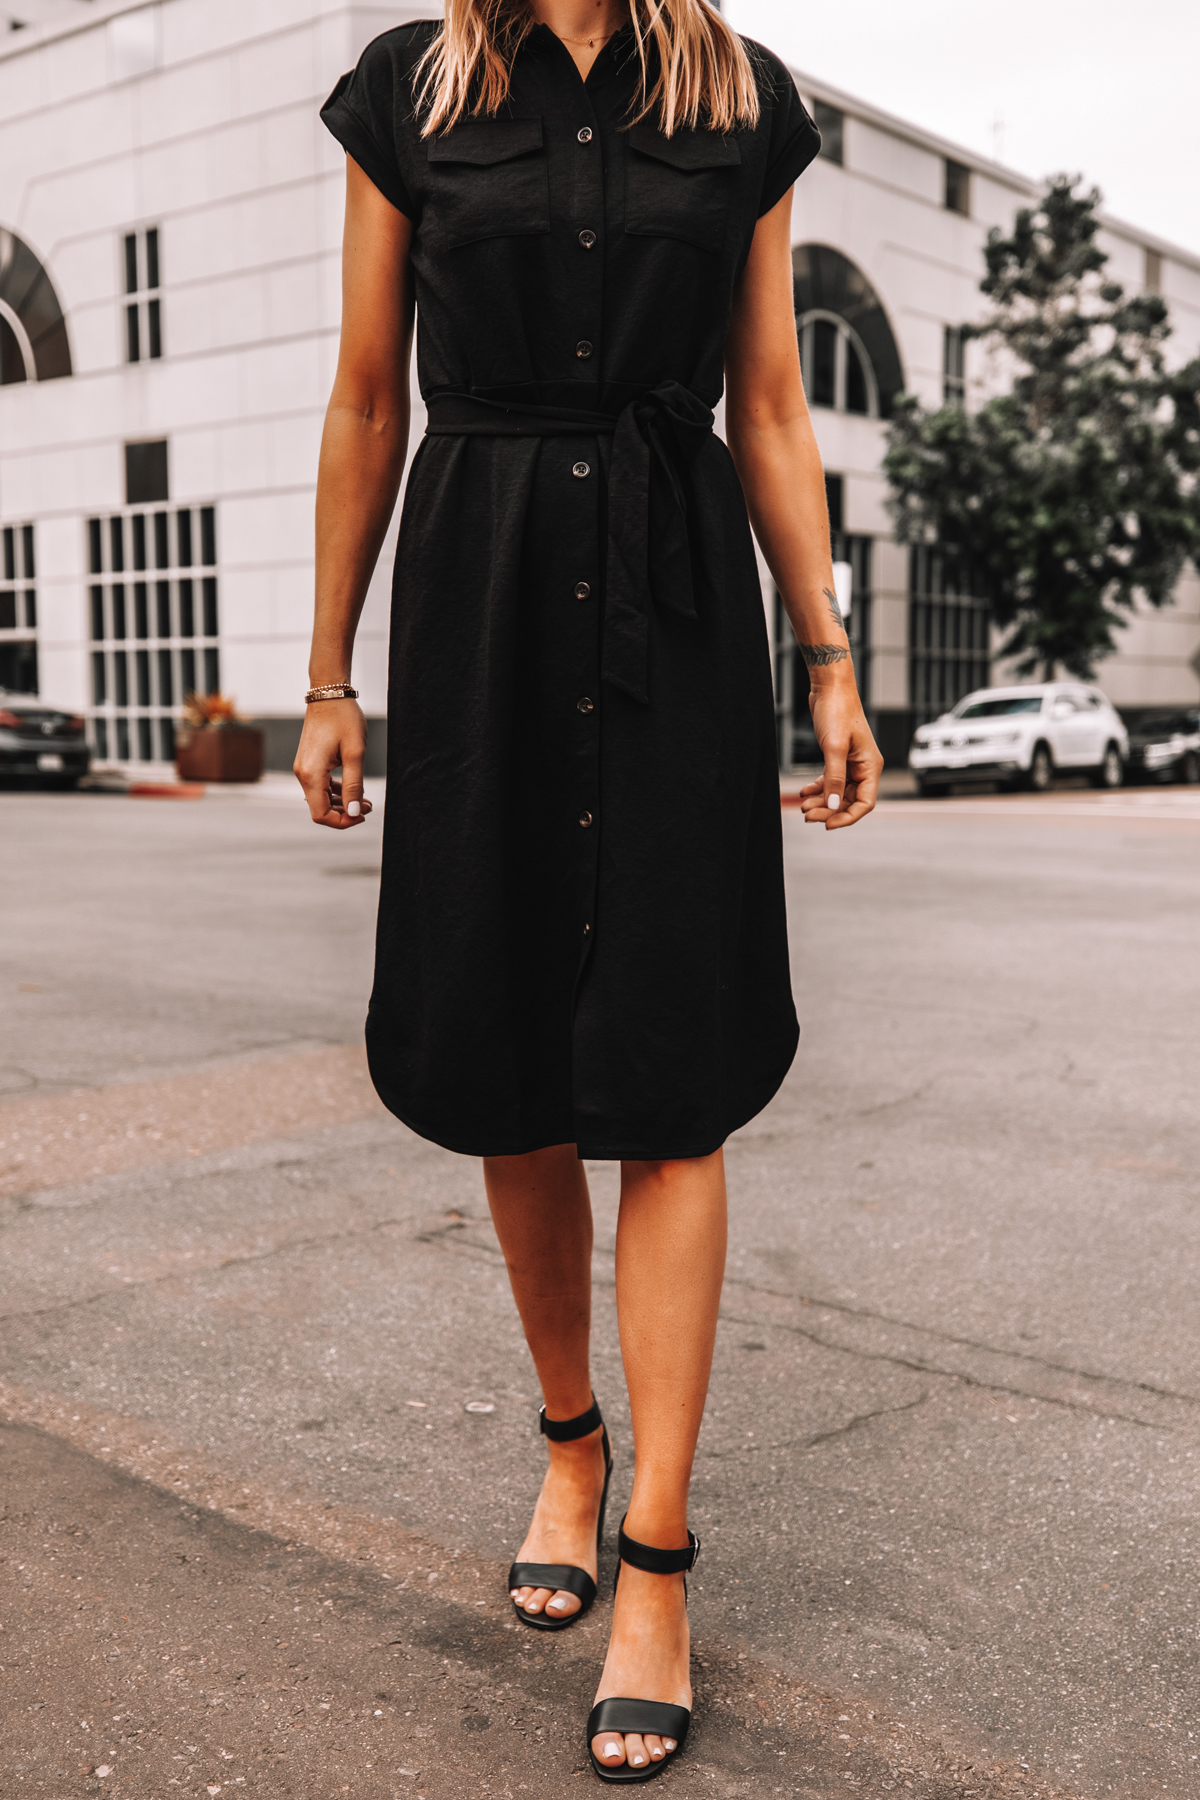 Fashion Jackson Wearing Ann Taylor Black Belted Shirt Dress Black Sandals Workwear Outfit 1